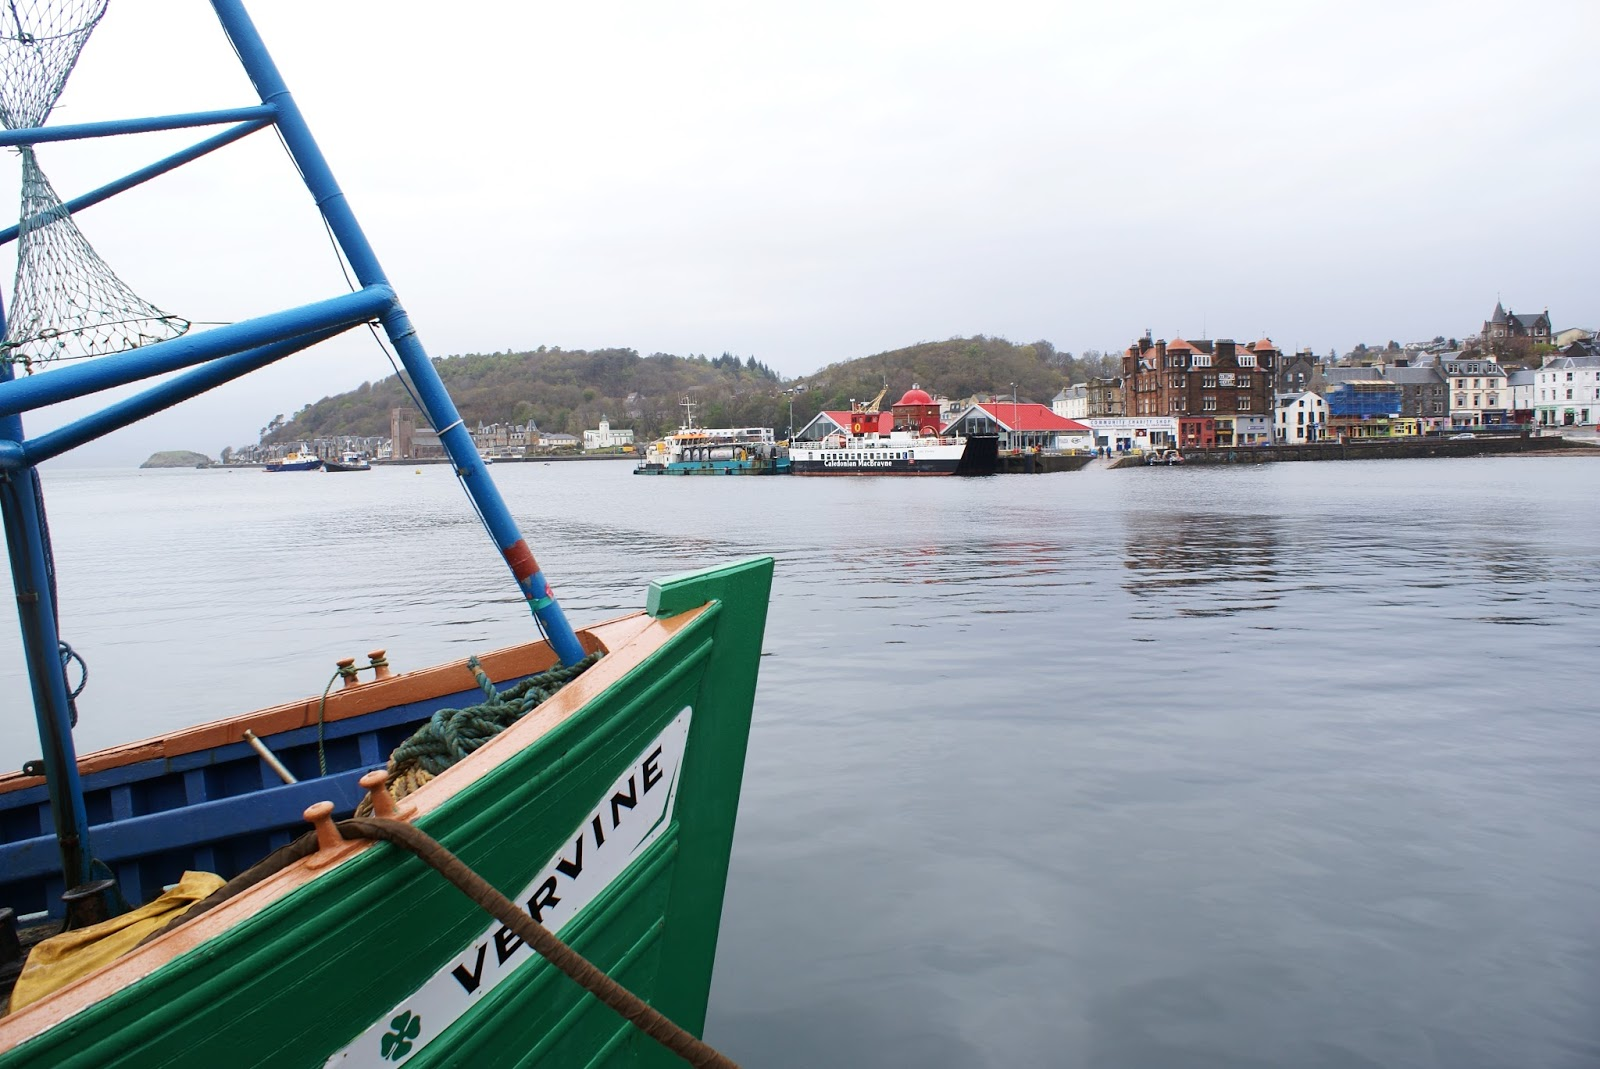 boat oban argyll highlands scotland uk great britain camomille blend